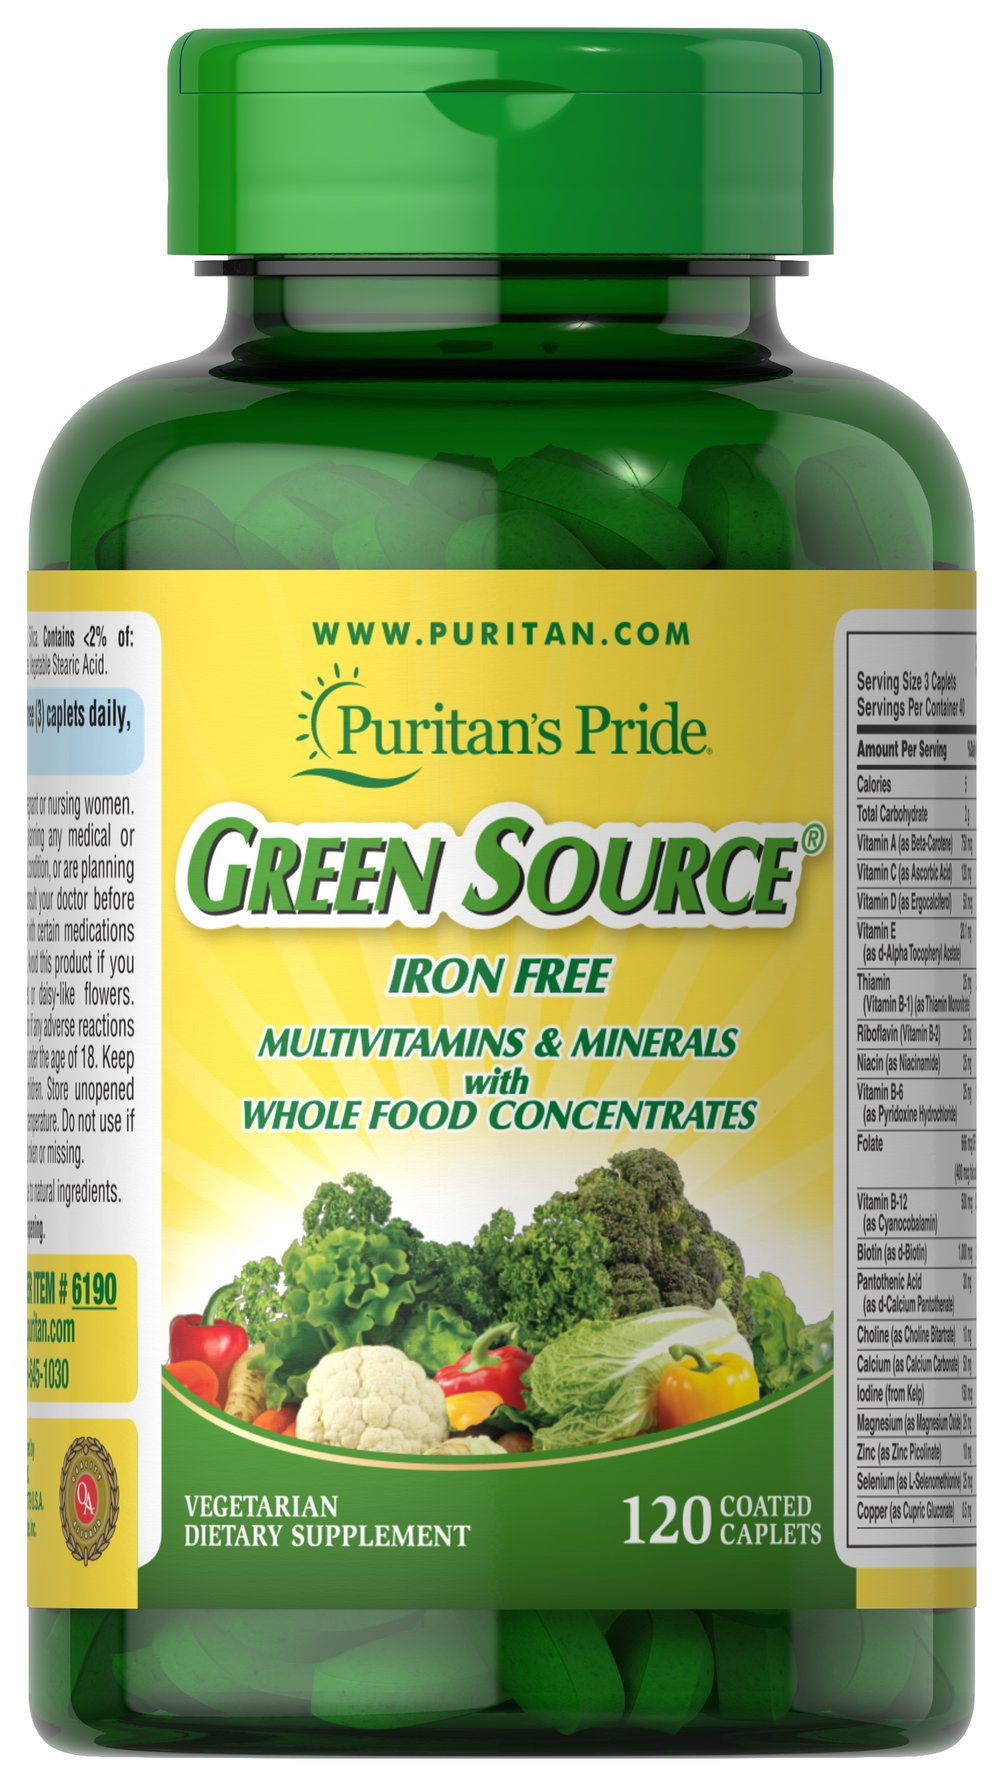 Green Source® Iron Free Multivitamin & Minerals <p>This concentrated formula is Iron Free and contains potent food source nutrients to provide essential vitamins, minerals, enzymes and amino acids. It also provides all the naturally occurring active constituents of whole foods. </p> 120 Caplets  $34.99